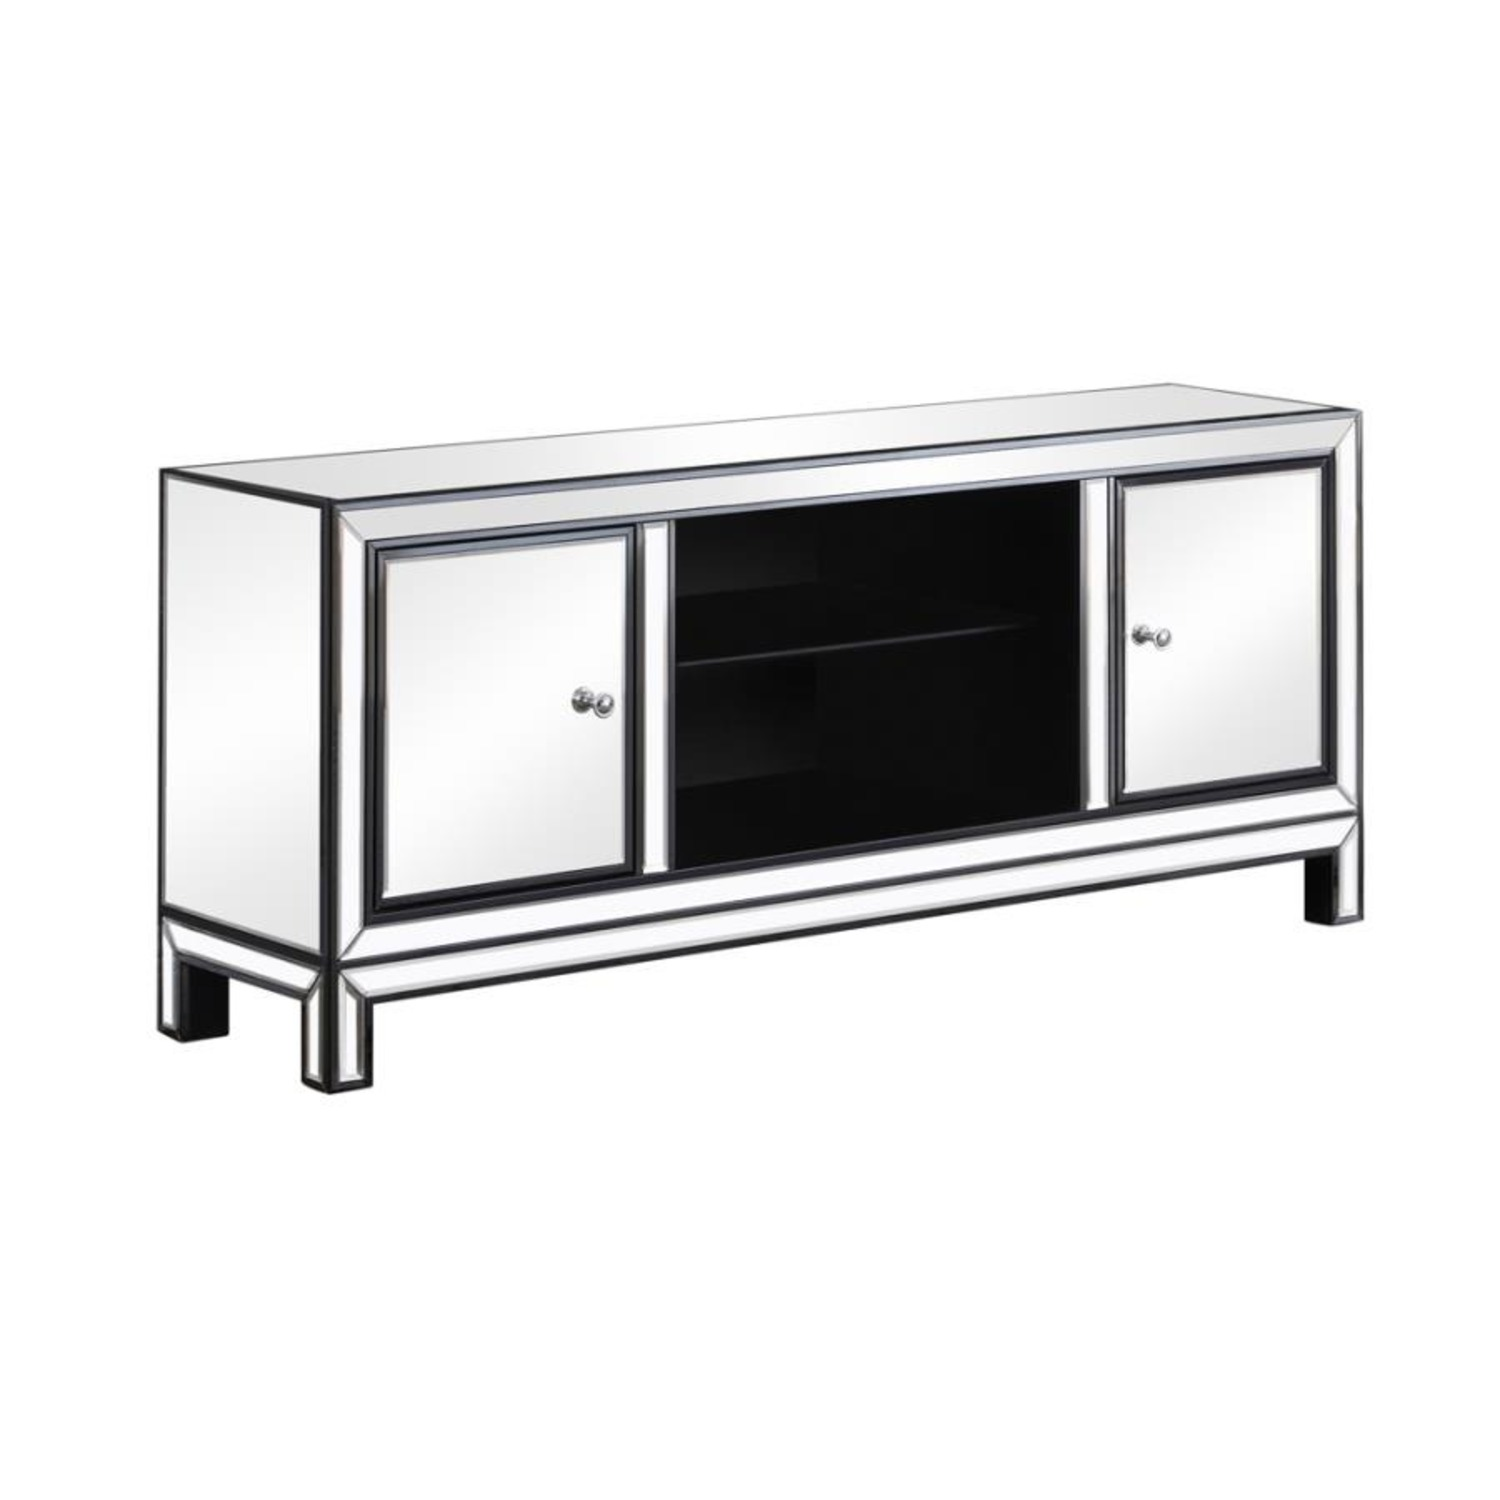 TV Console W/ Adjustable Shelf In Silver Finish - image-1